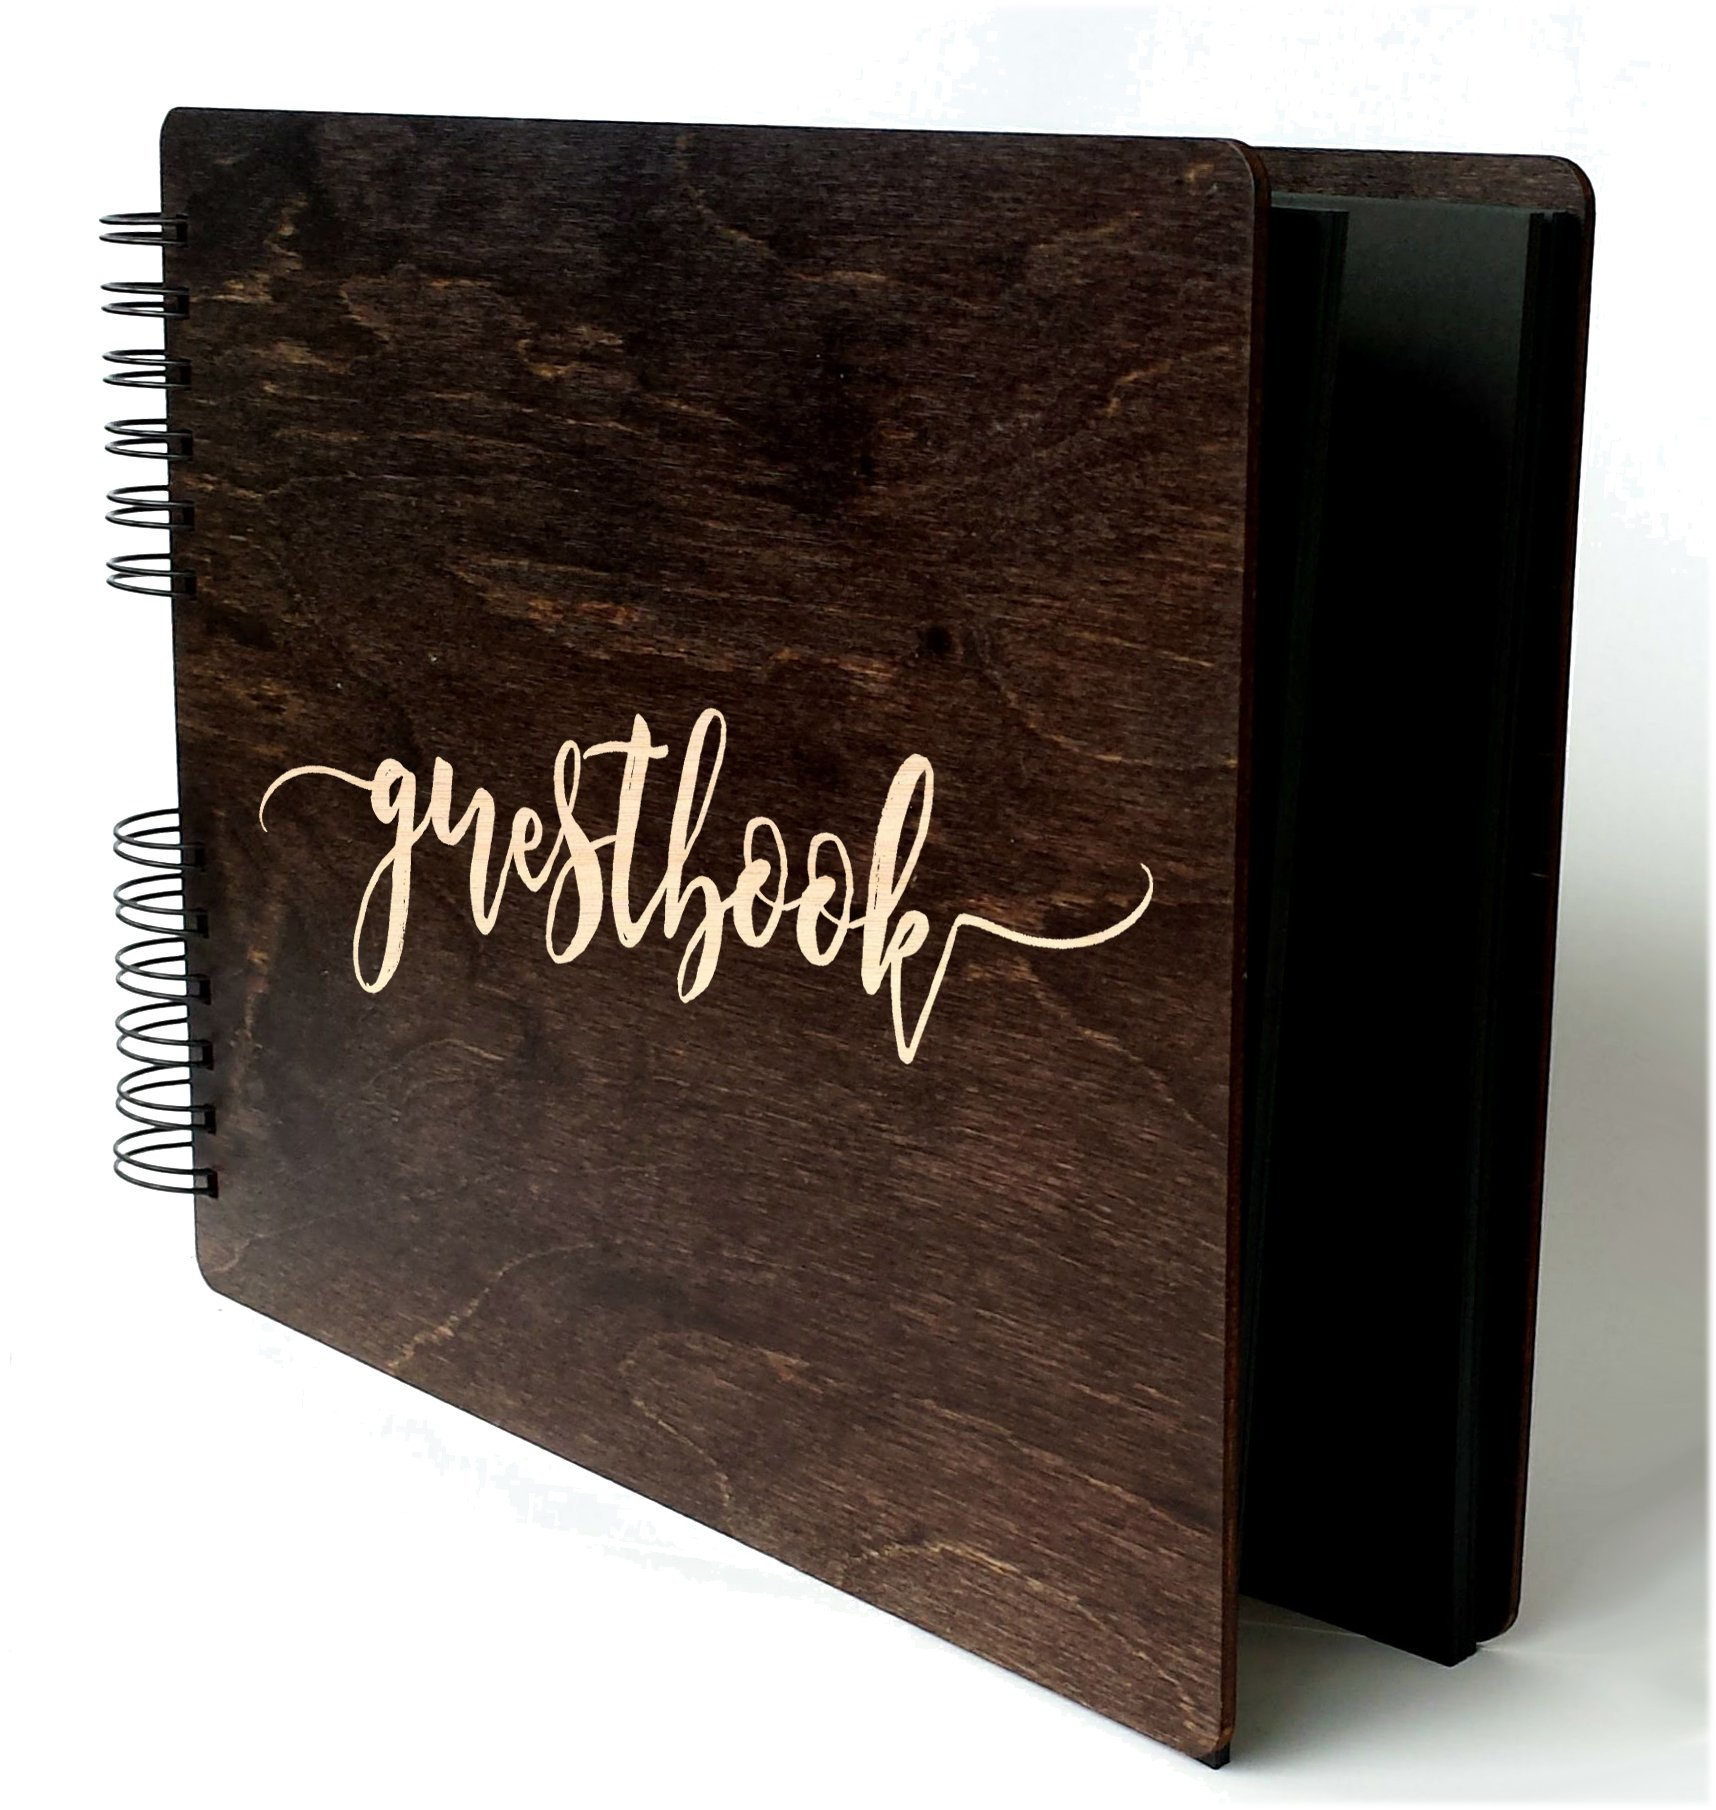 Wooden Rustic Guest Book 11'' x 8.5'' : Made in USA (All Black Cardstock Inside Pages, Front Cover GUESTBOOK Engraved) by Personalize It (Image #4)